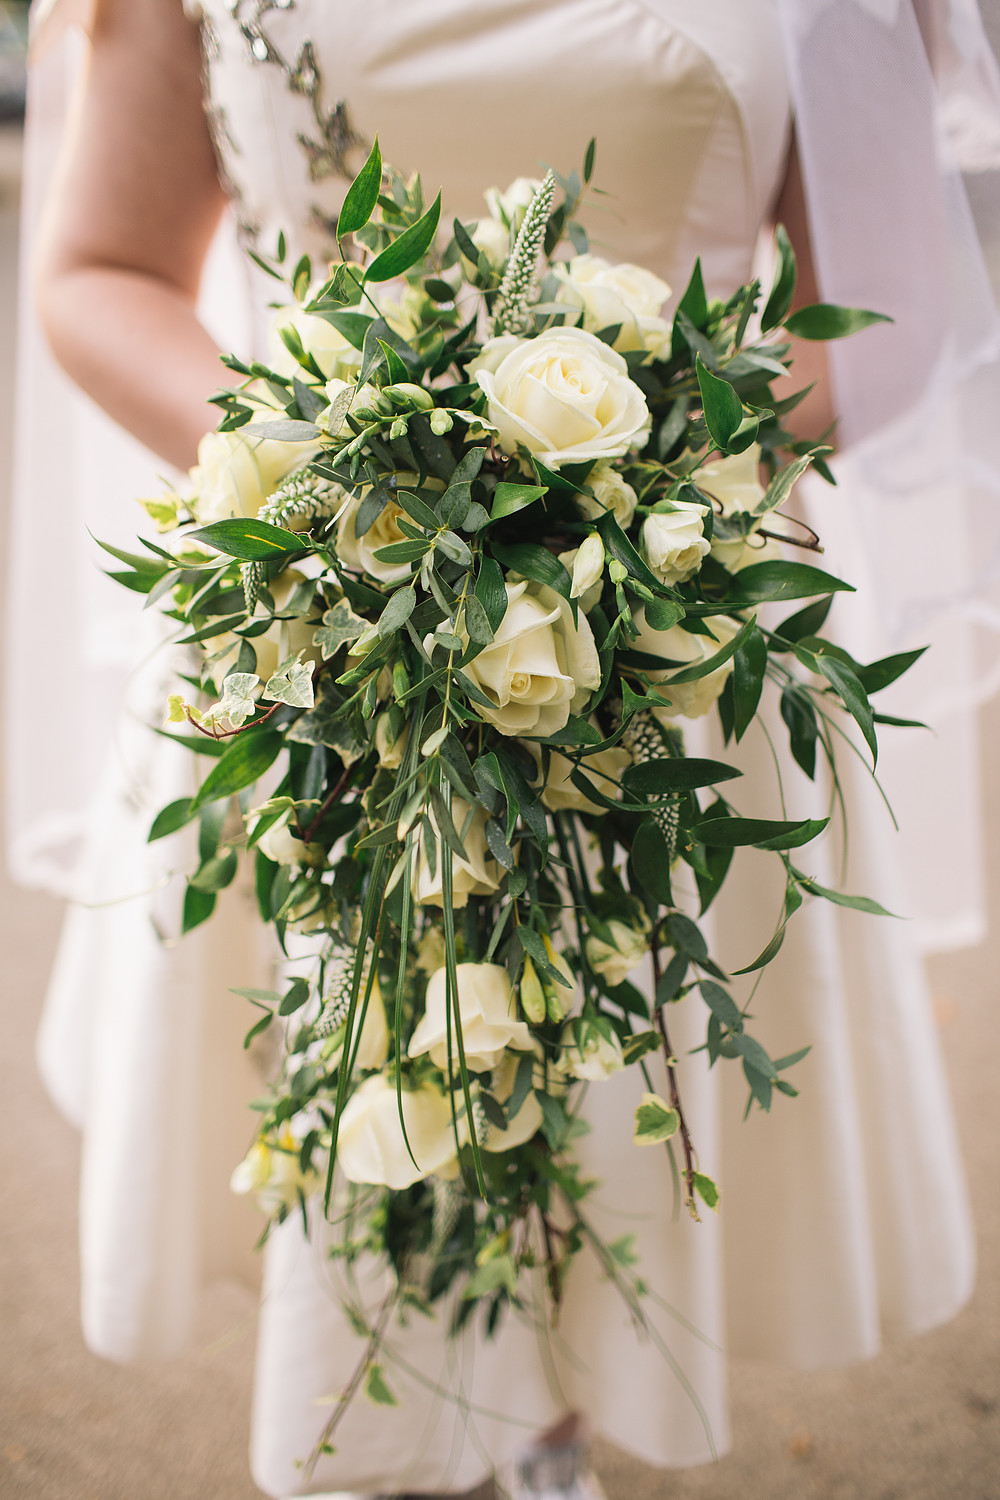 choose natural hand tied wedding bouquets for the wedding 2 - Choose Natural Hand Tied Wedding Bouquets for the Wedding